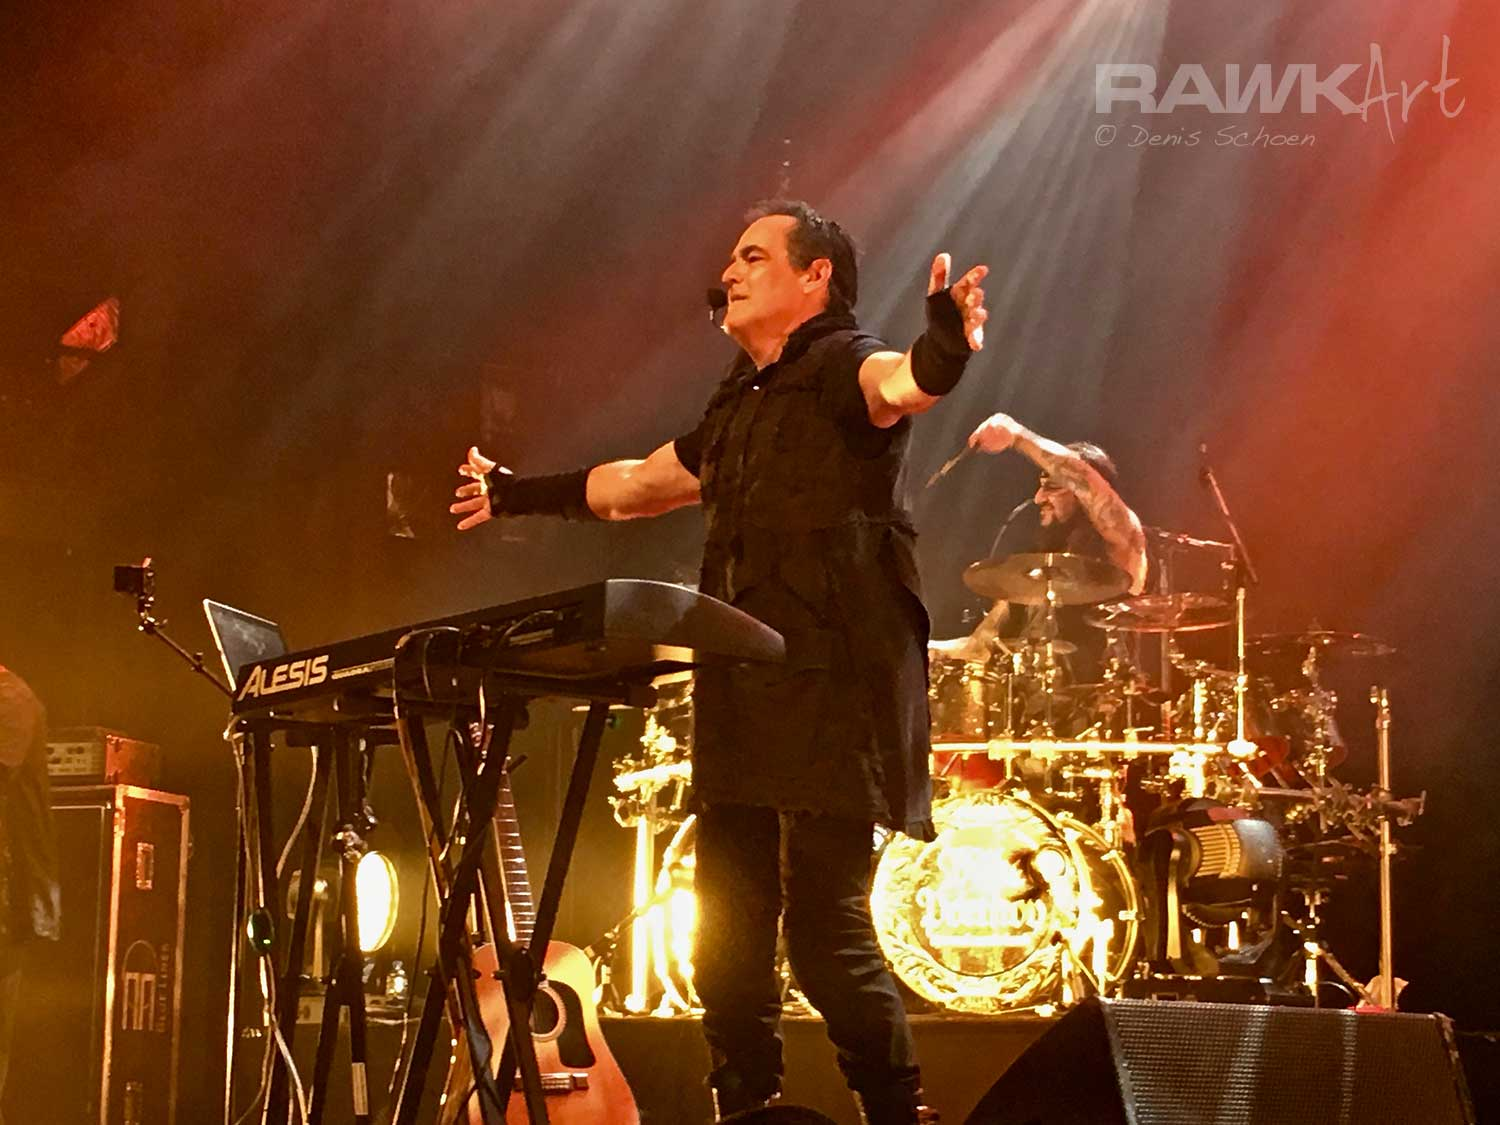 The Neal Morse Band at Poppodium 013, Tilburg, Netherlands 2017, The Road Called Home